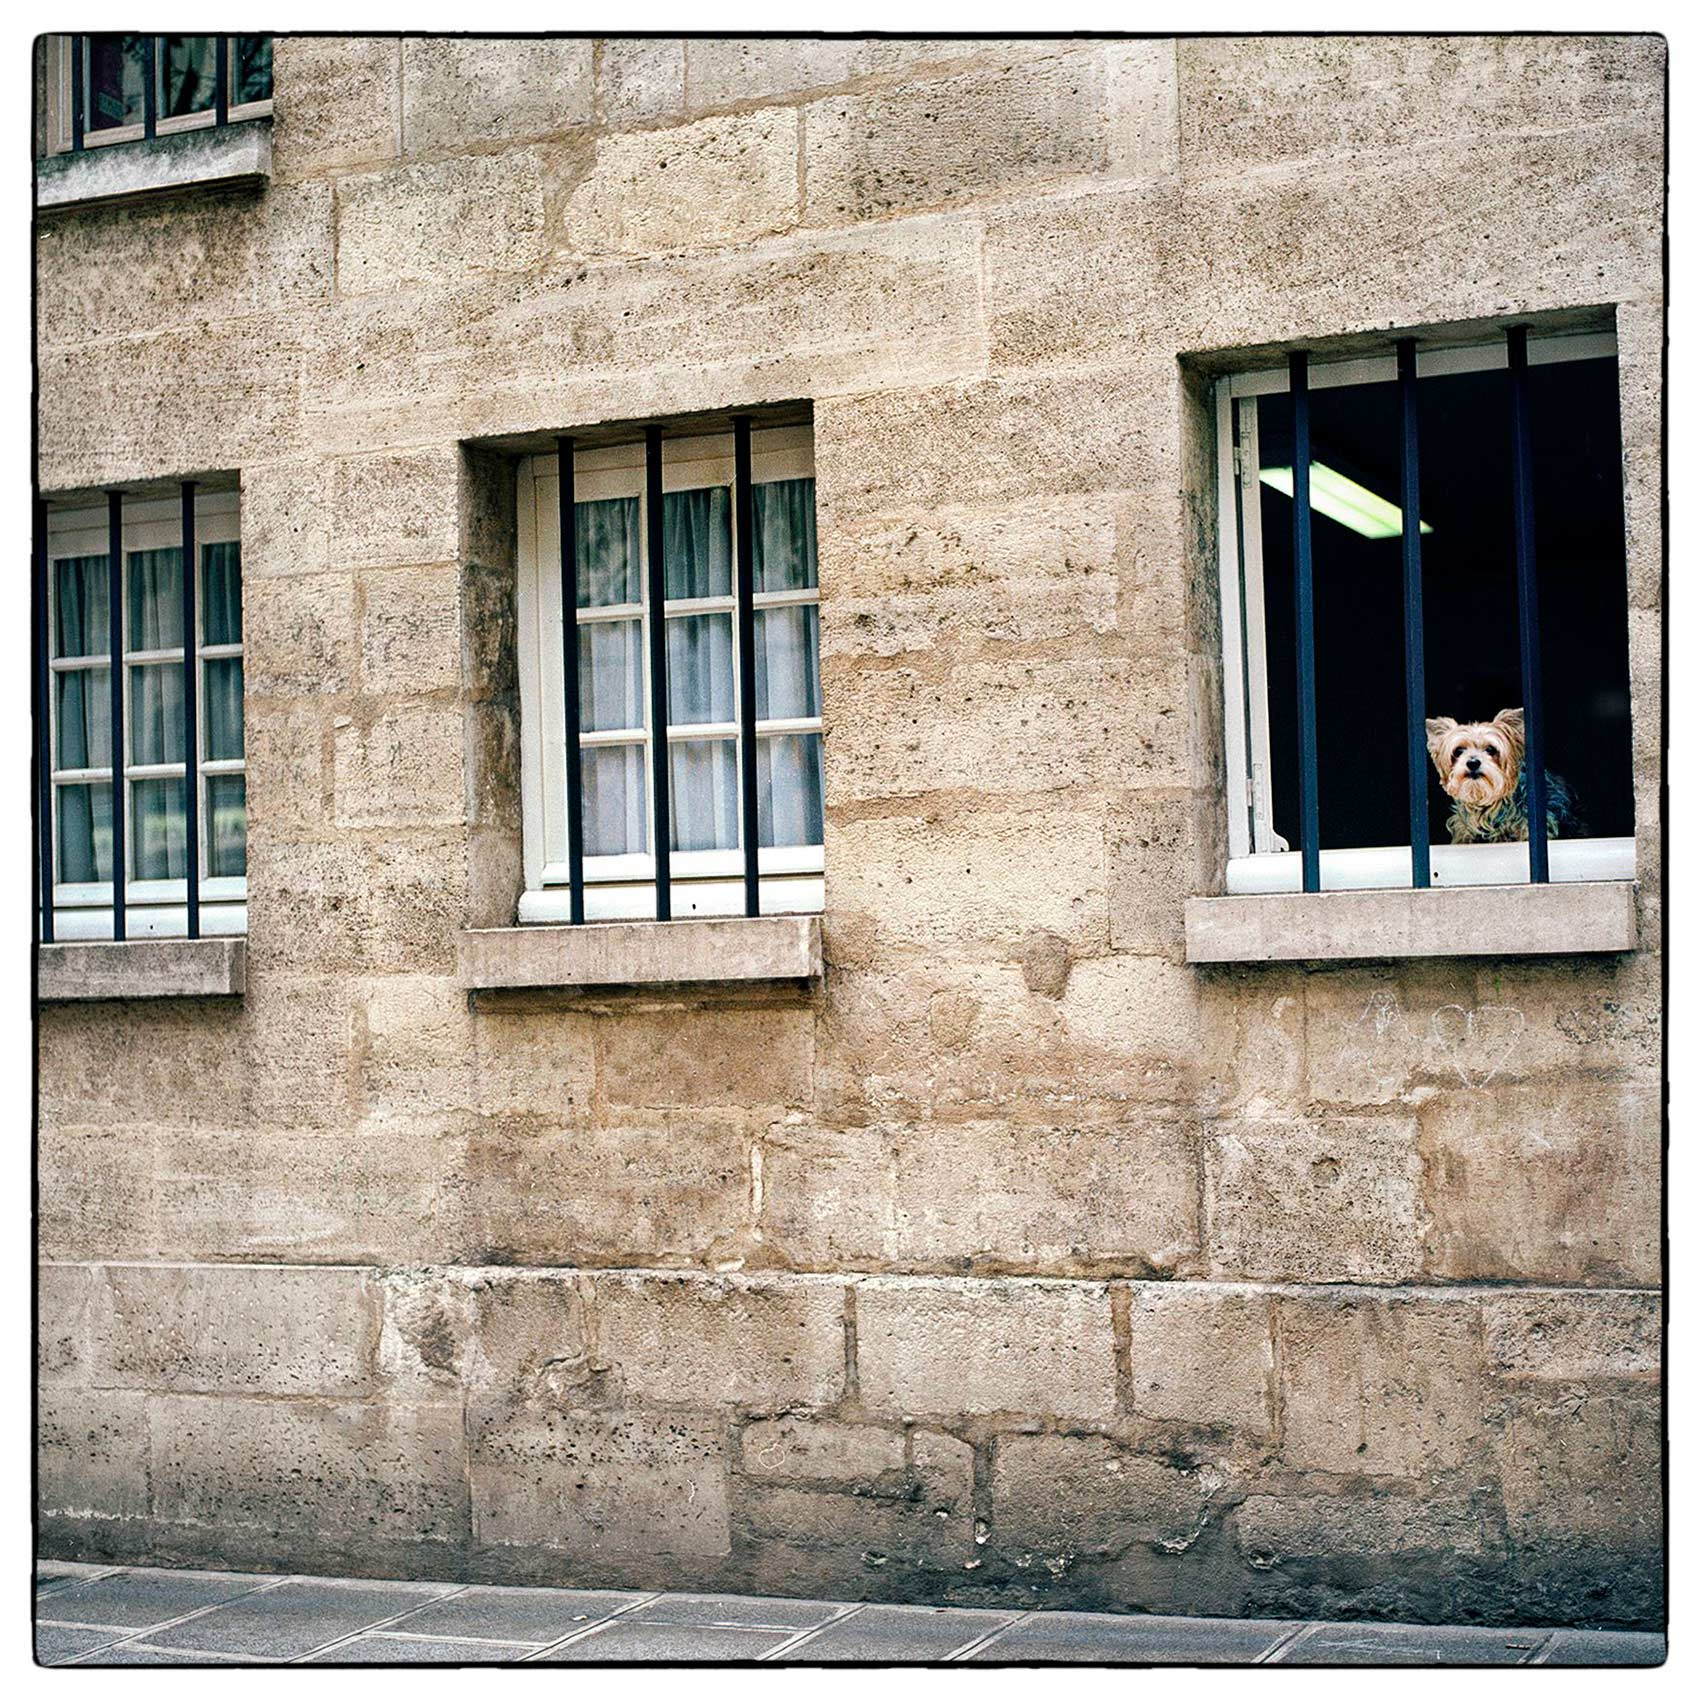 a-puppy-looks-out-the-window-of-a-historic-buidling-in-central-paris-france